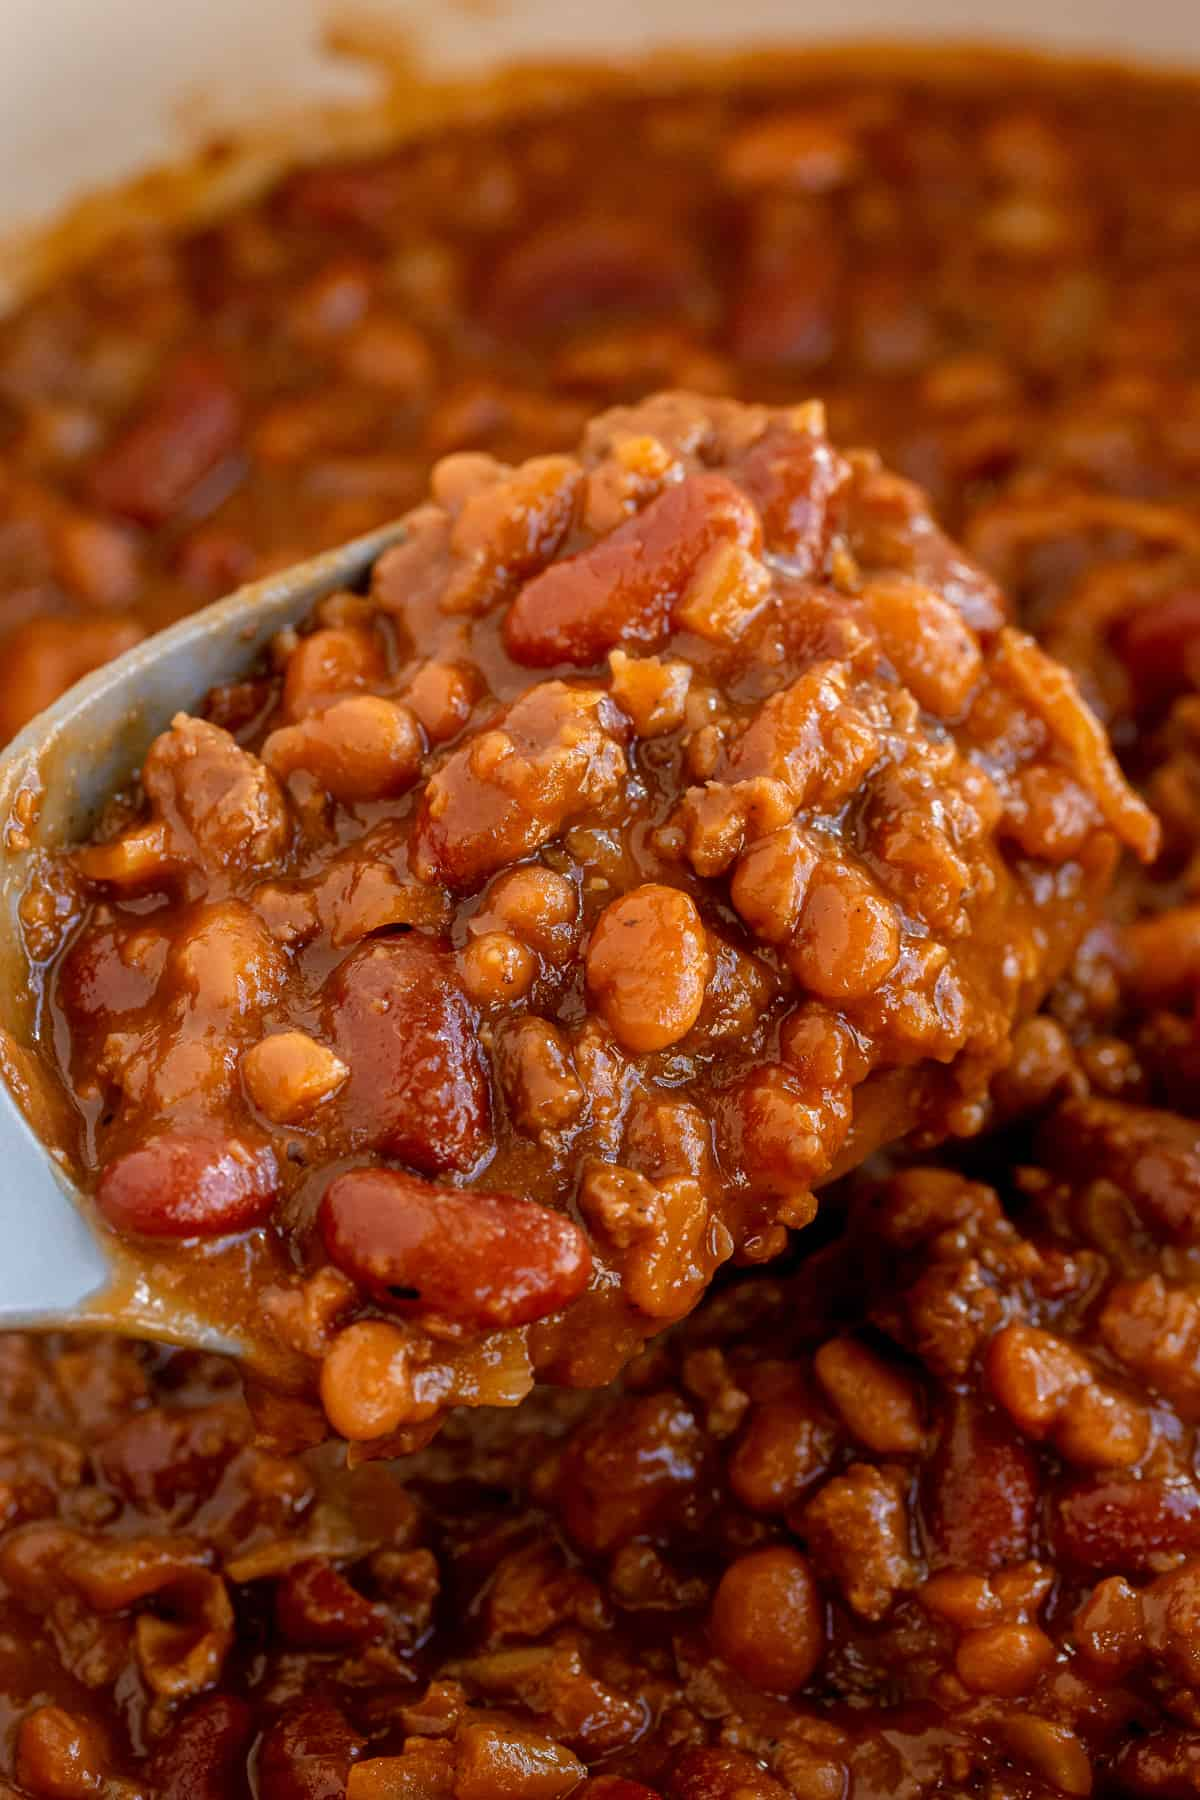 A close up of a spoon scooping baked beans.